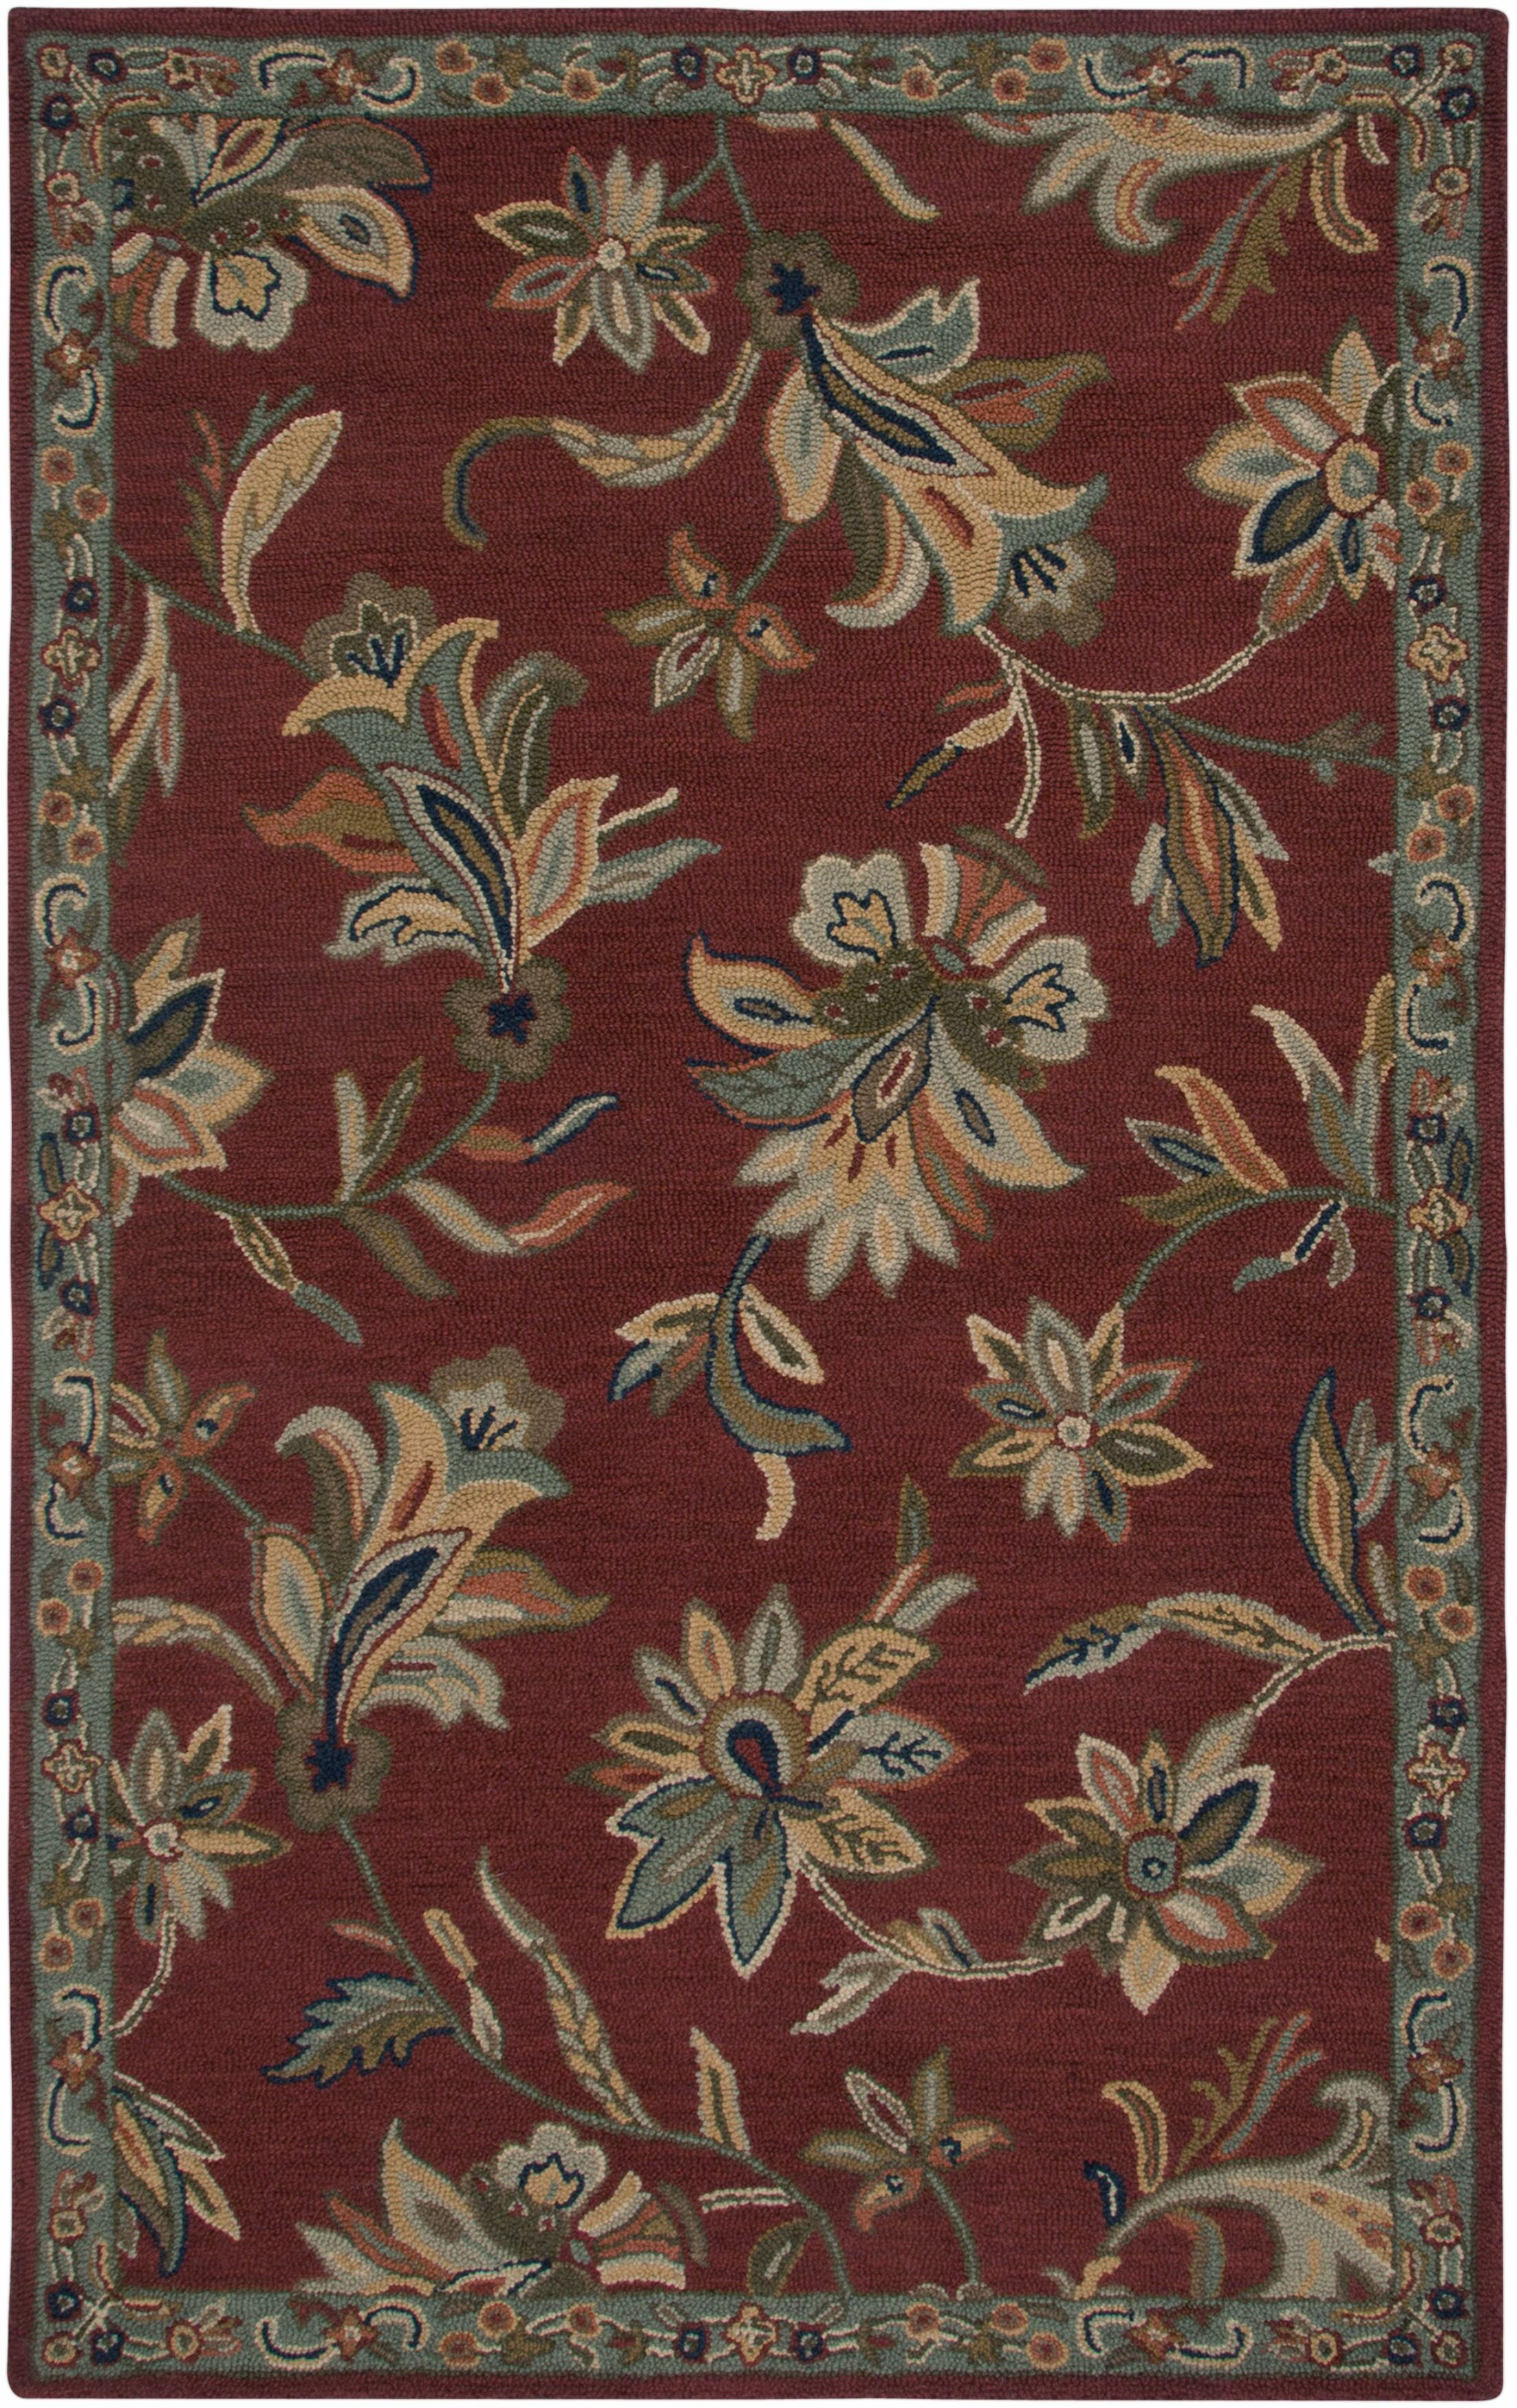 Hand-Tufted Red/Green Area Rug Rug Size: Round 8'